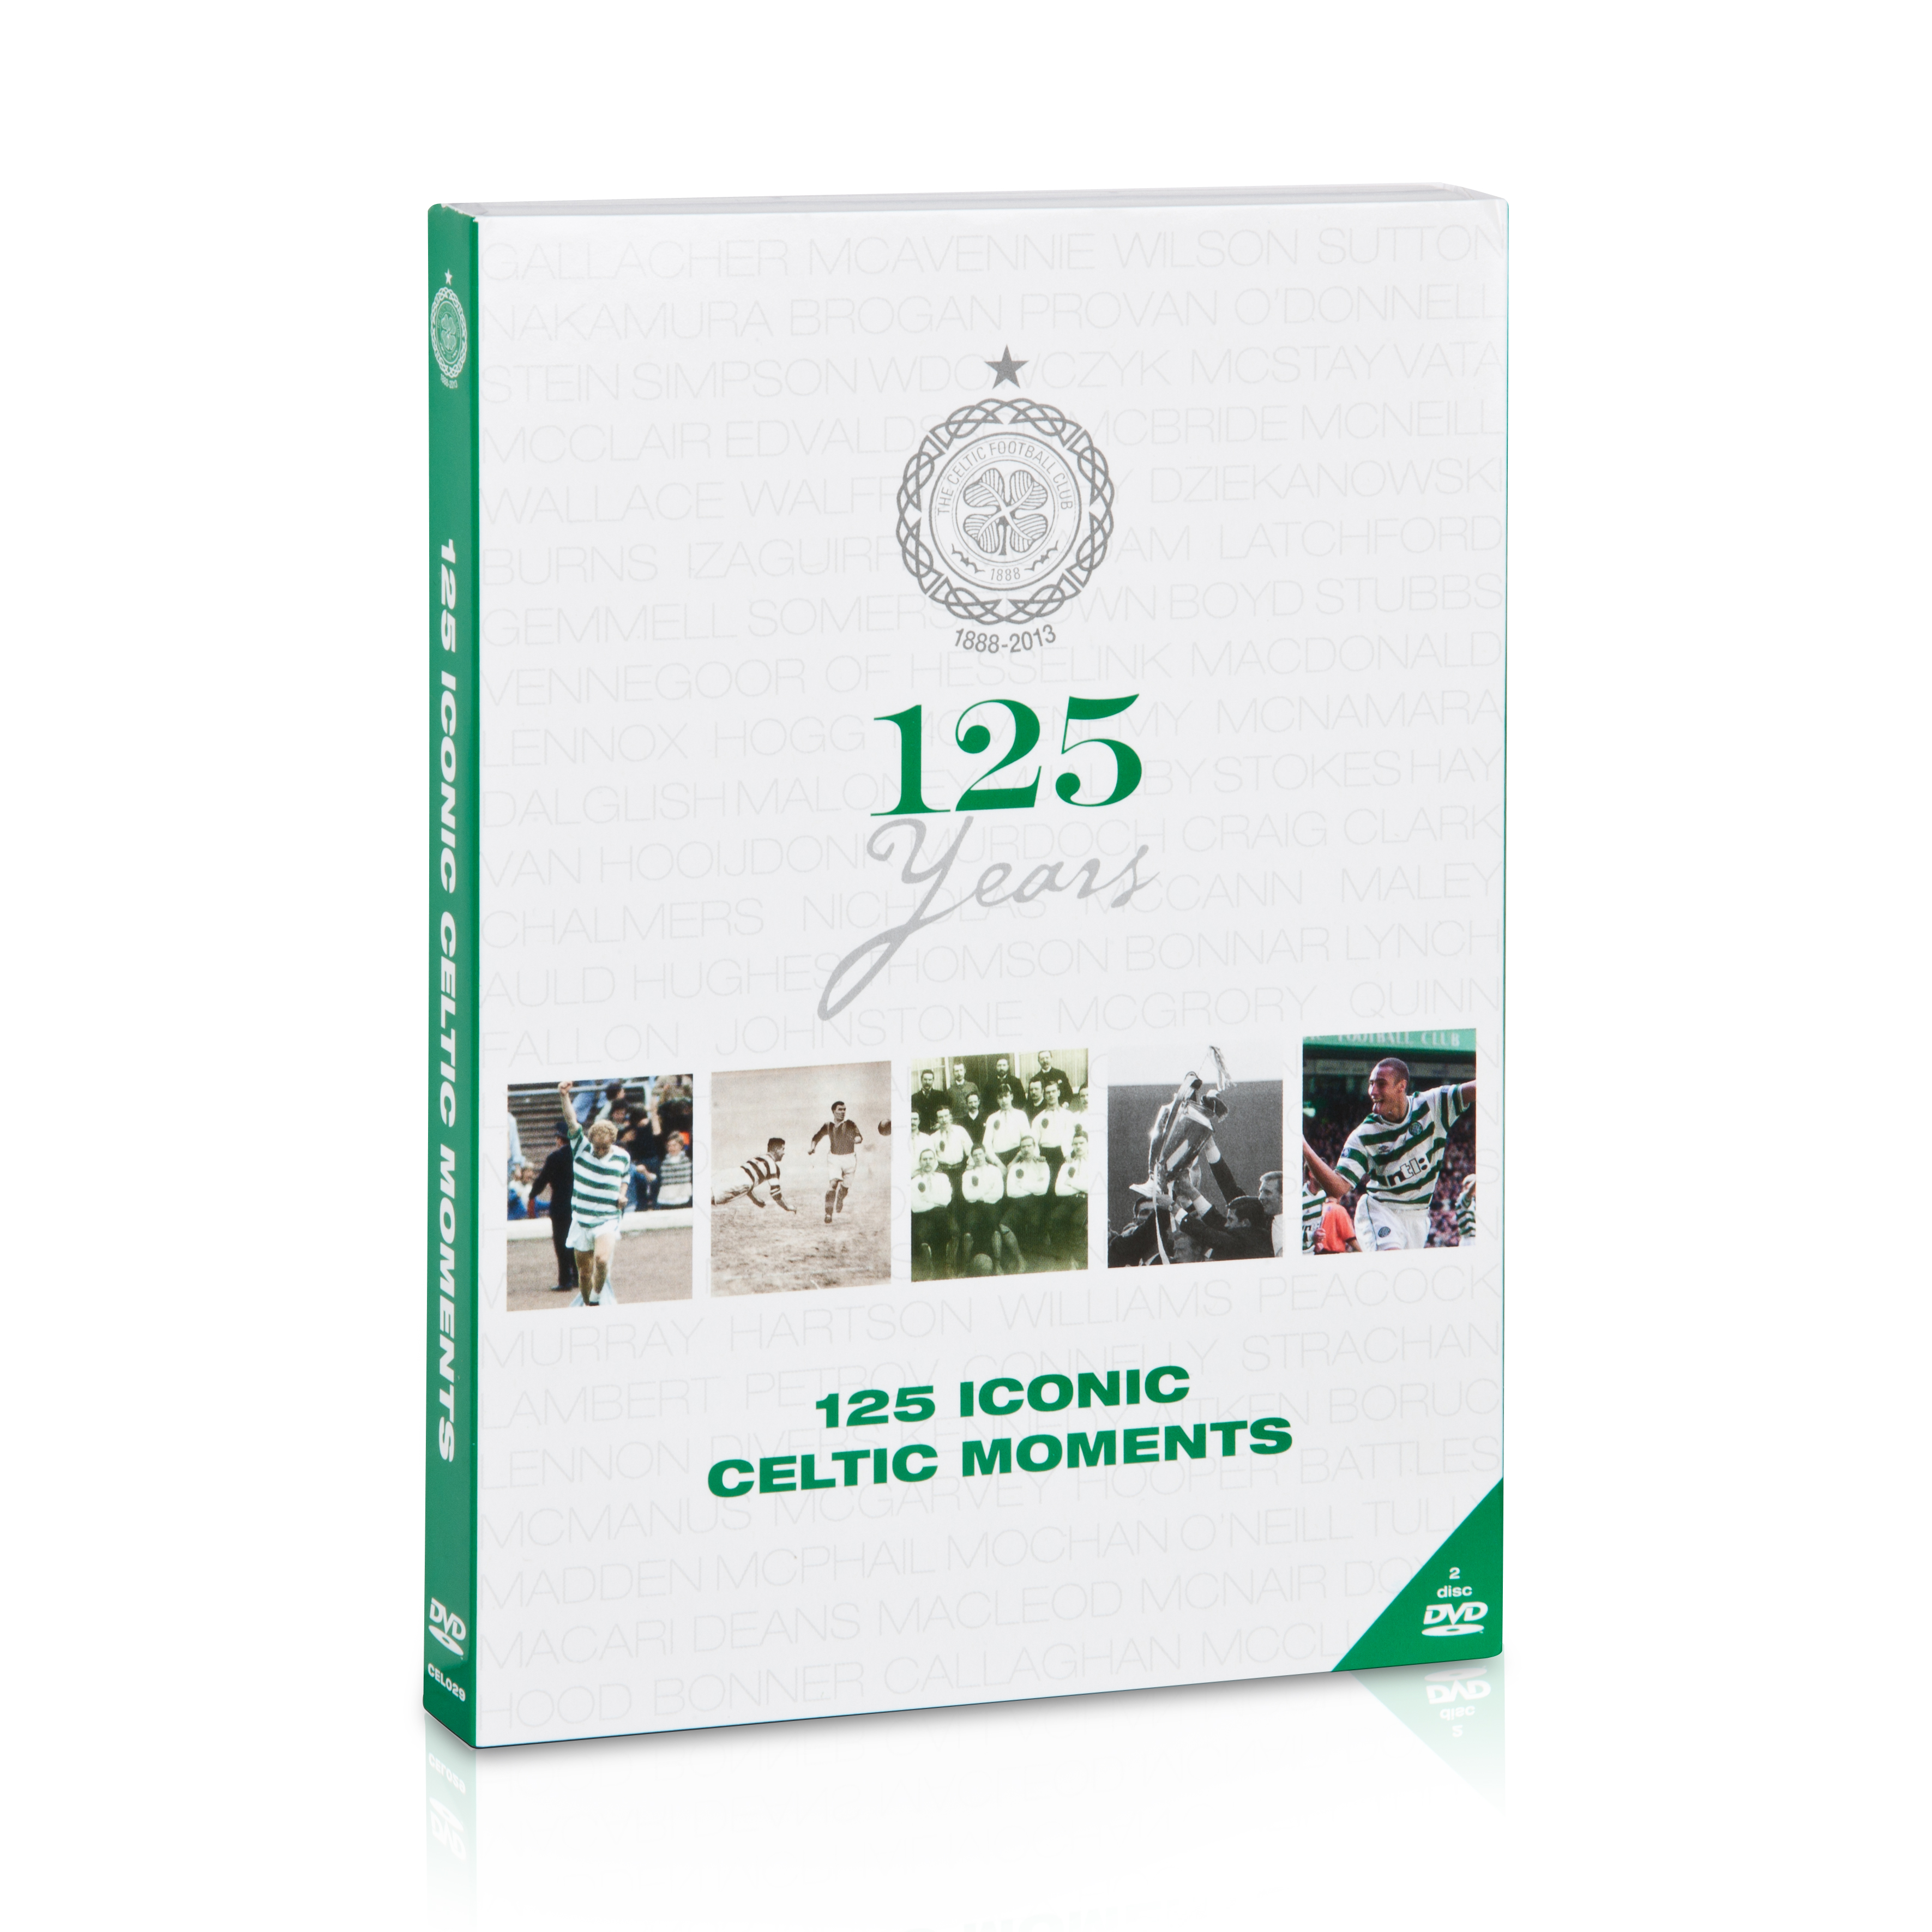 Celtic 125 Years of Celtic DVD - 2 Disc